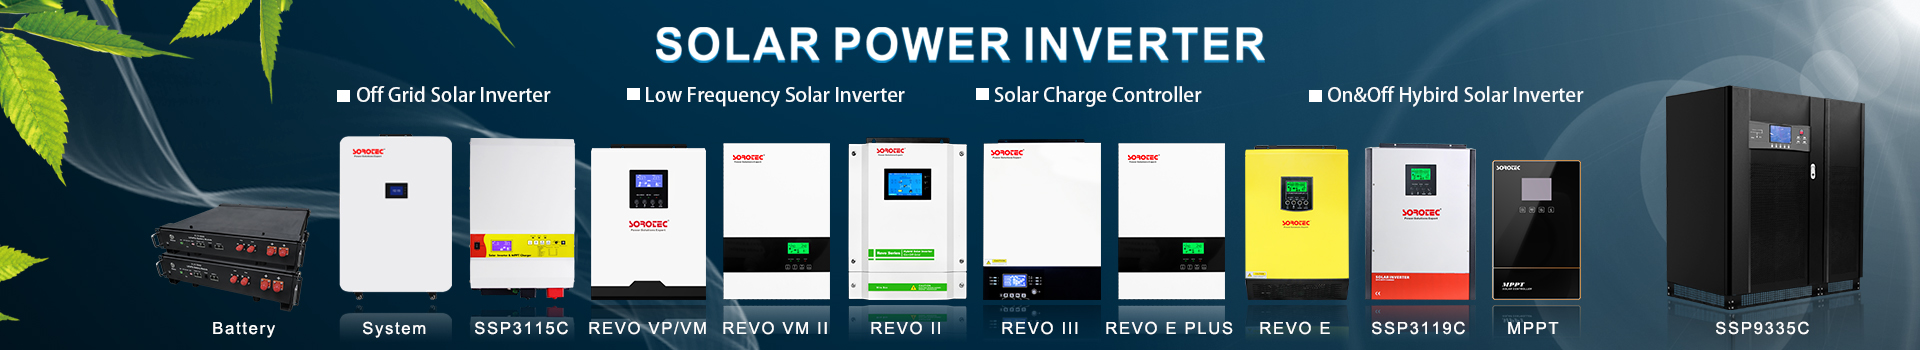 2021 The most popular solar inverter collection